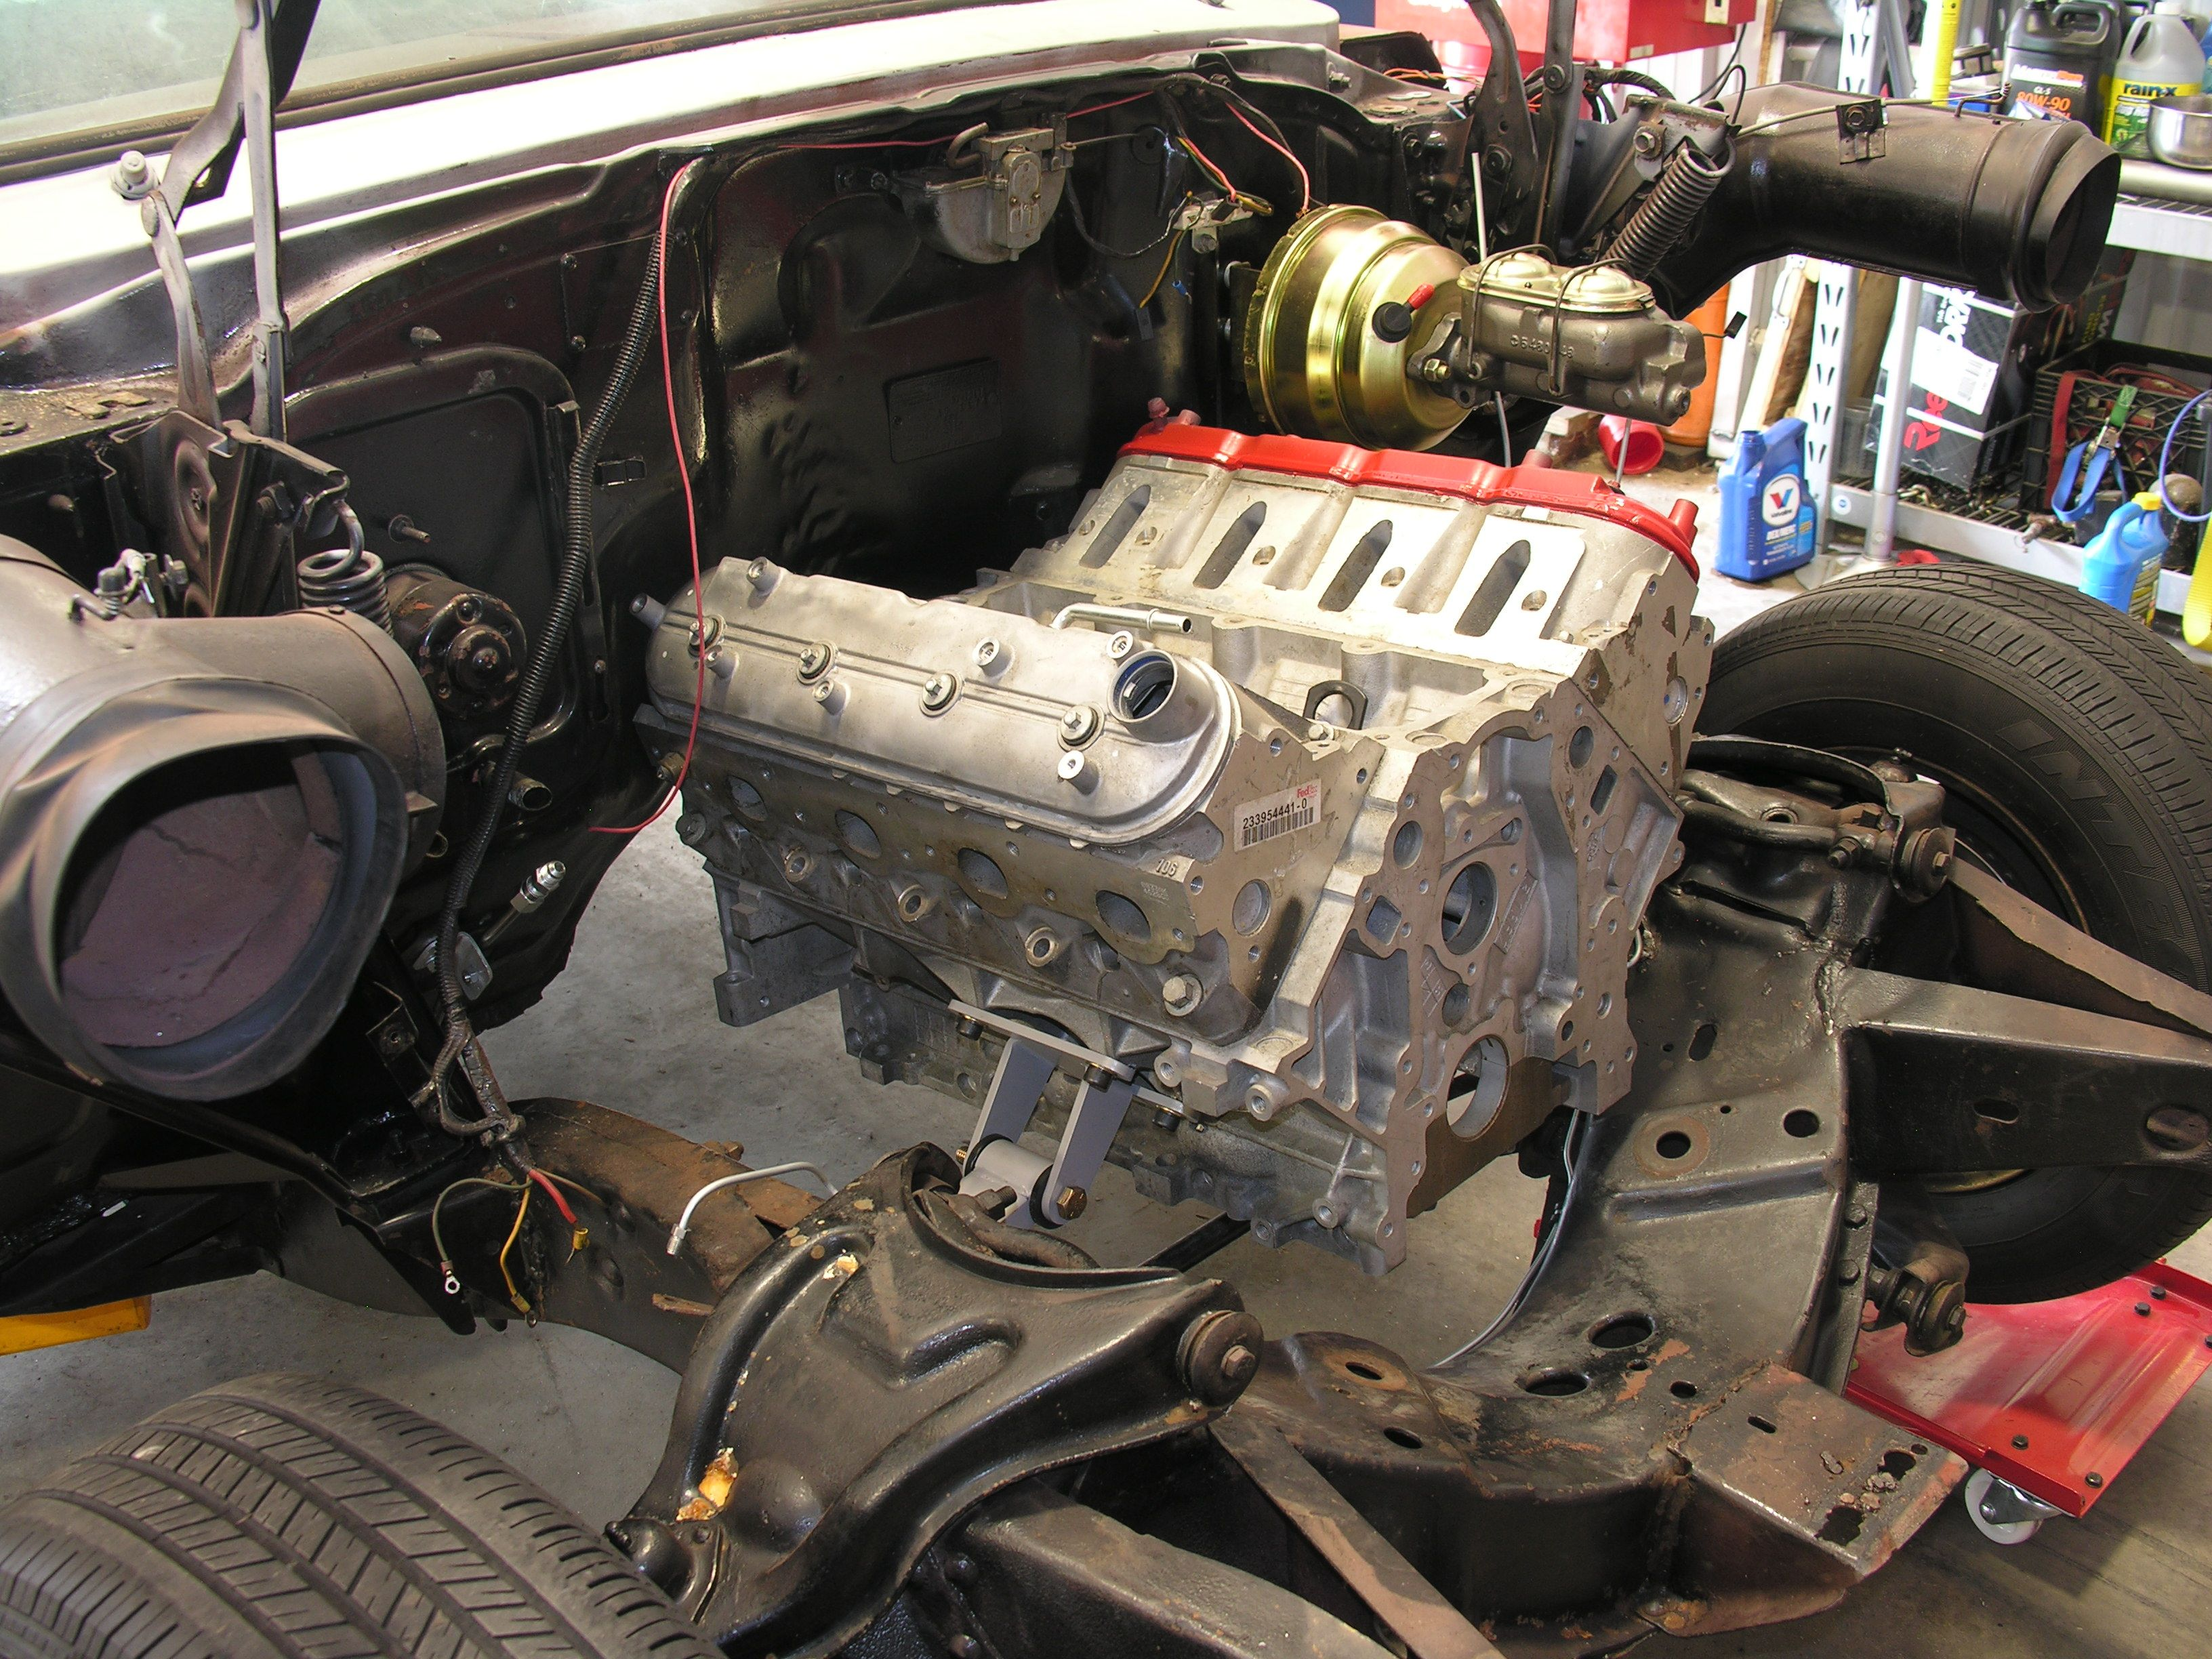 This Is A 1957 Chevy Bel Air That Southern Performance Systems Will Be Installing A Ls3 Engine With 6l80e 6 Speed A Chevy Bel Air 1957 Chevy Bel Air New Engine